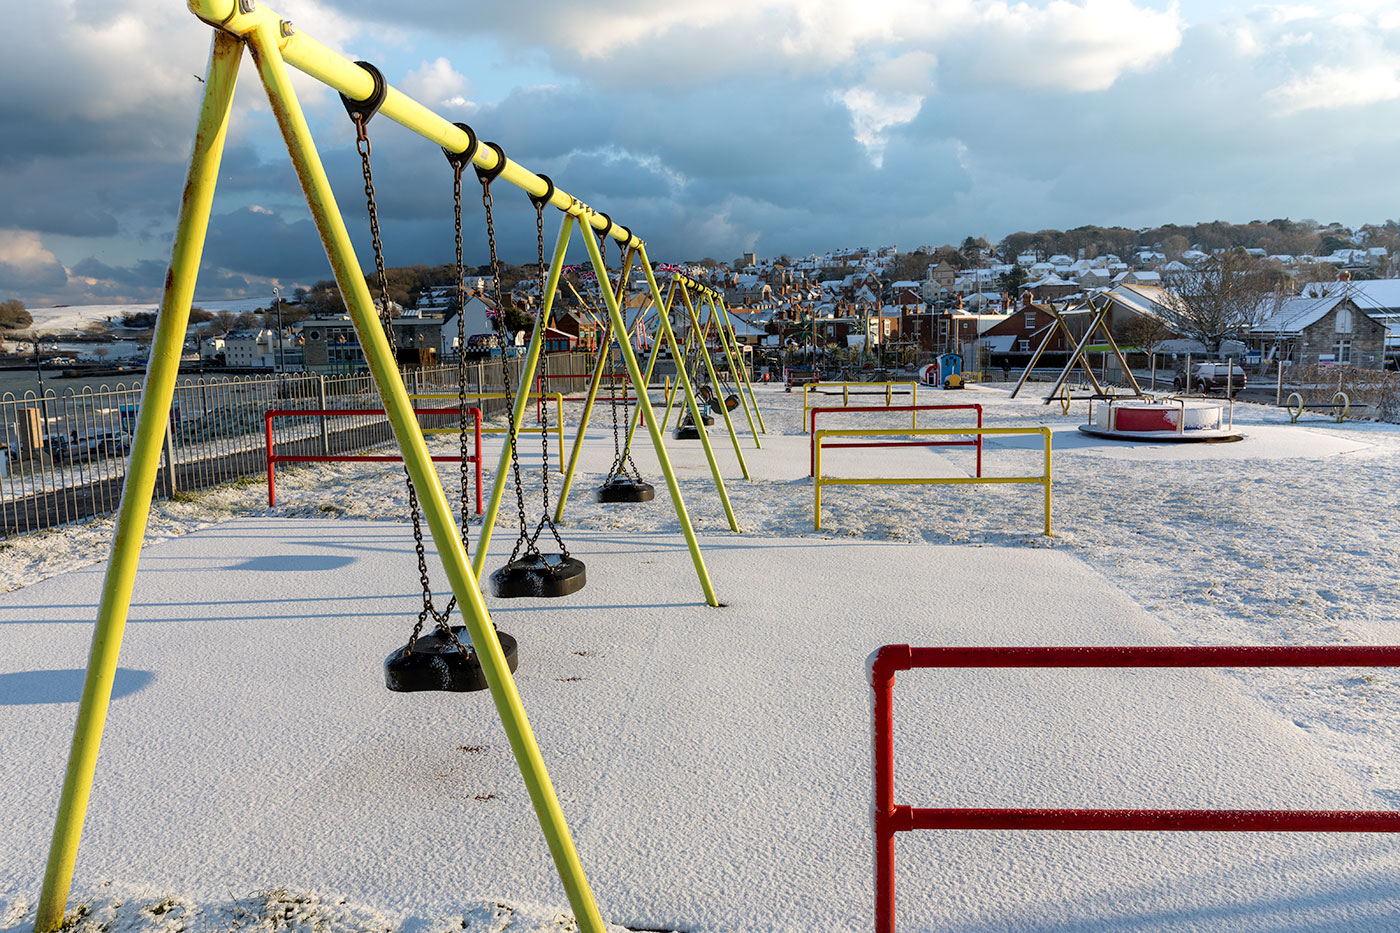 Snow on the Swings